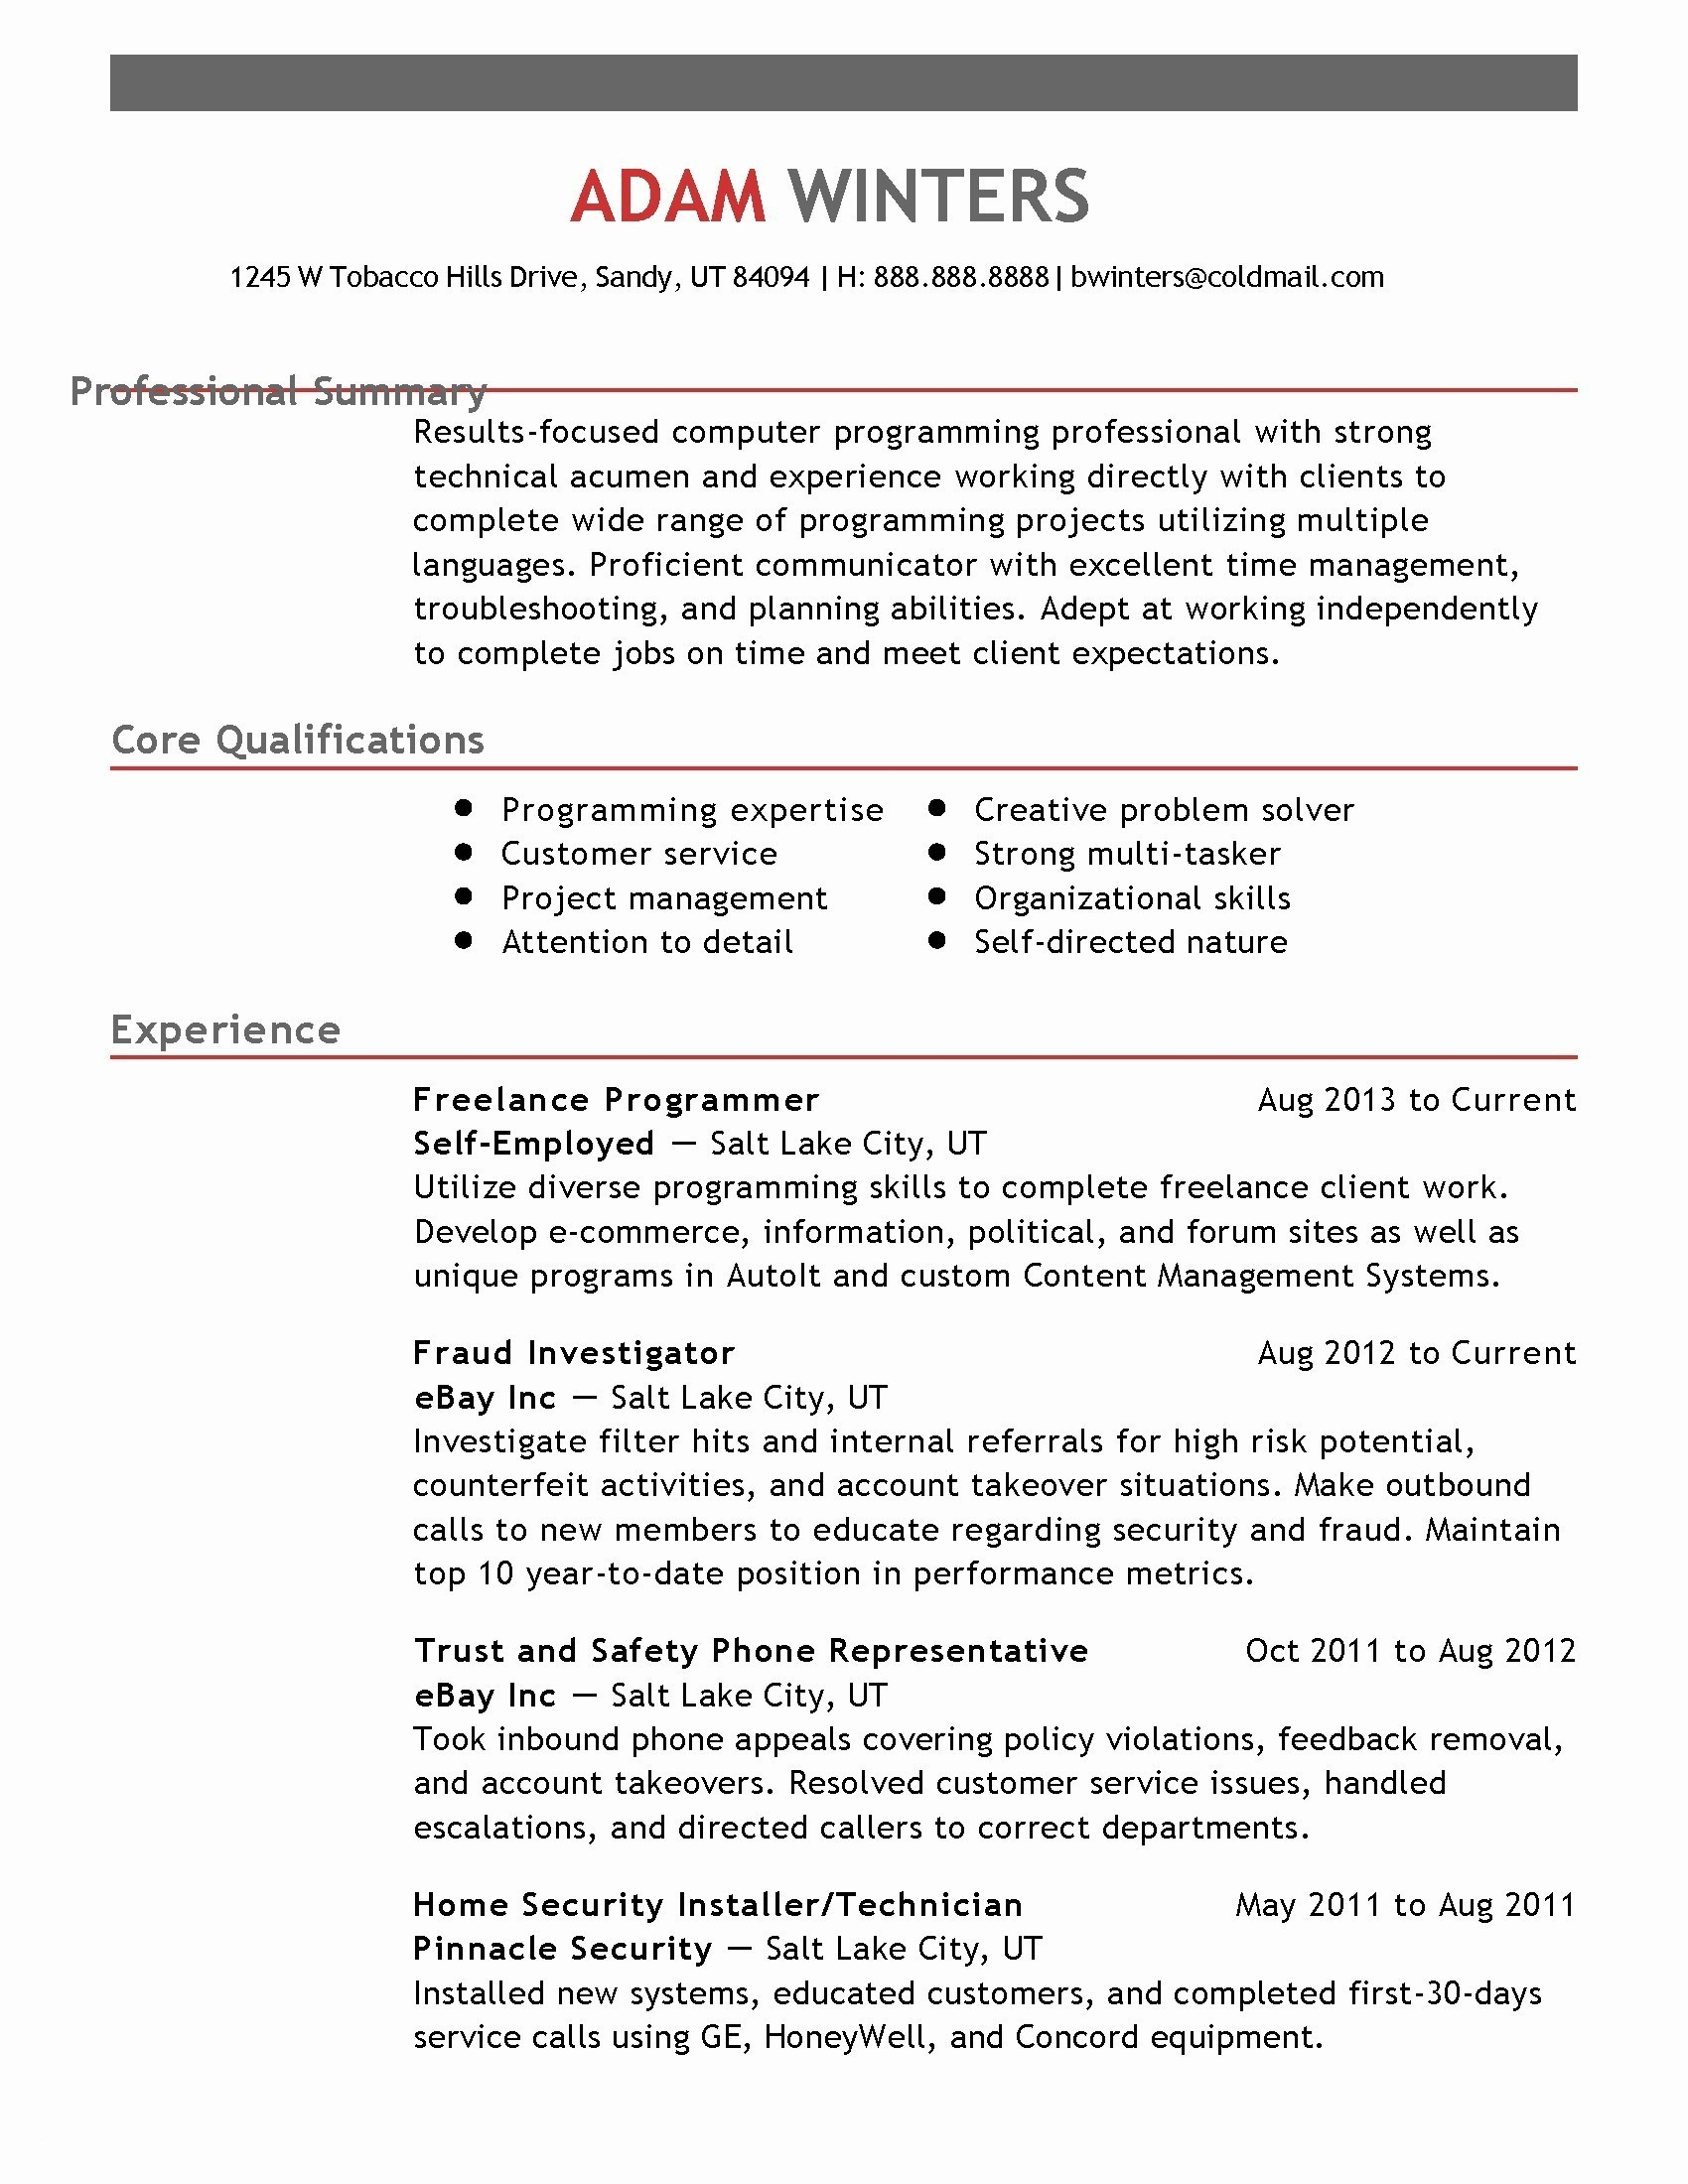 Resume Empty format - Best Resume Templates Download Free Inspirationa Resume Template